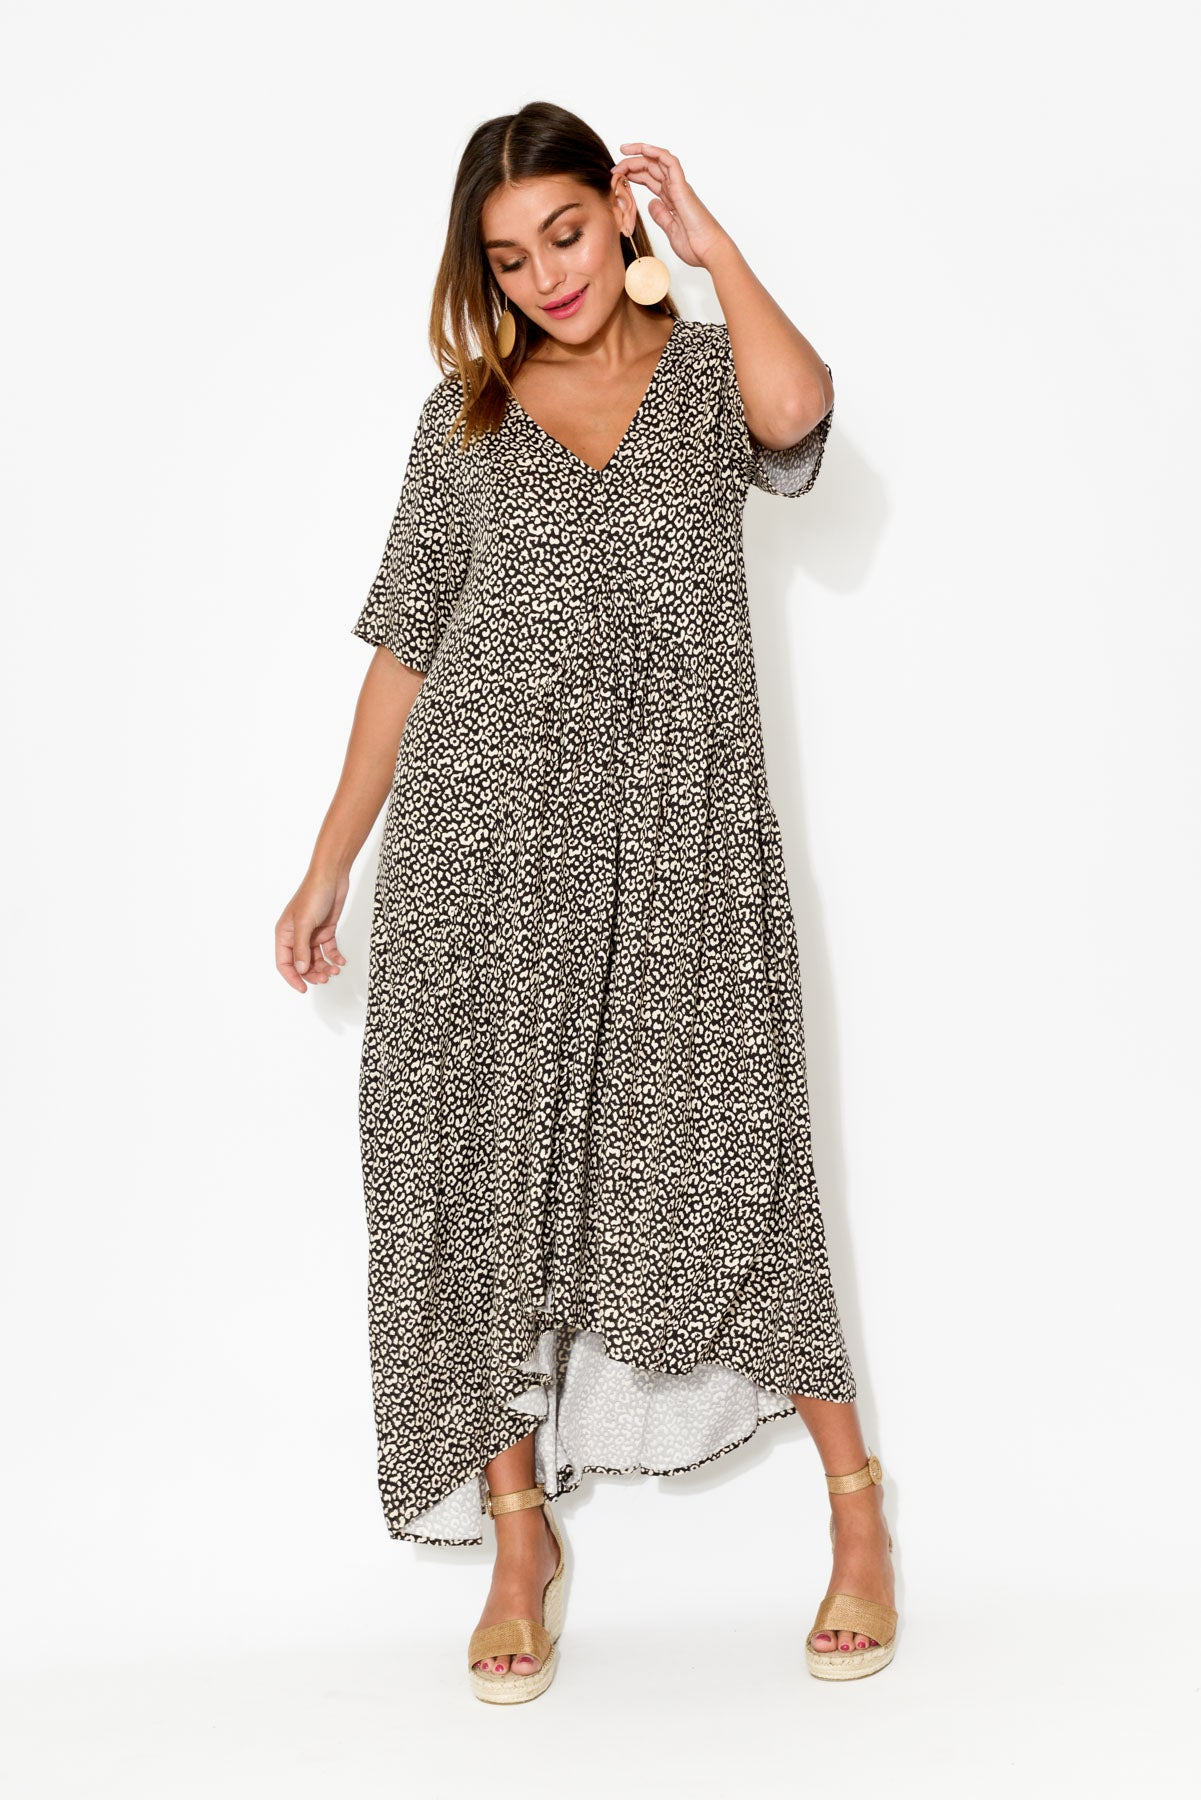 Cheetah Peak Maxi Dress